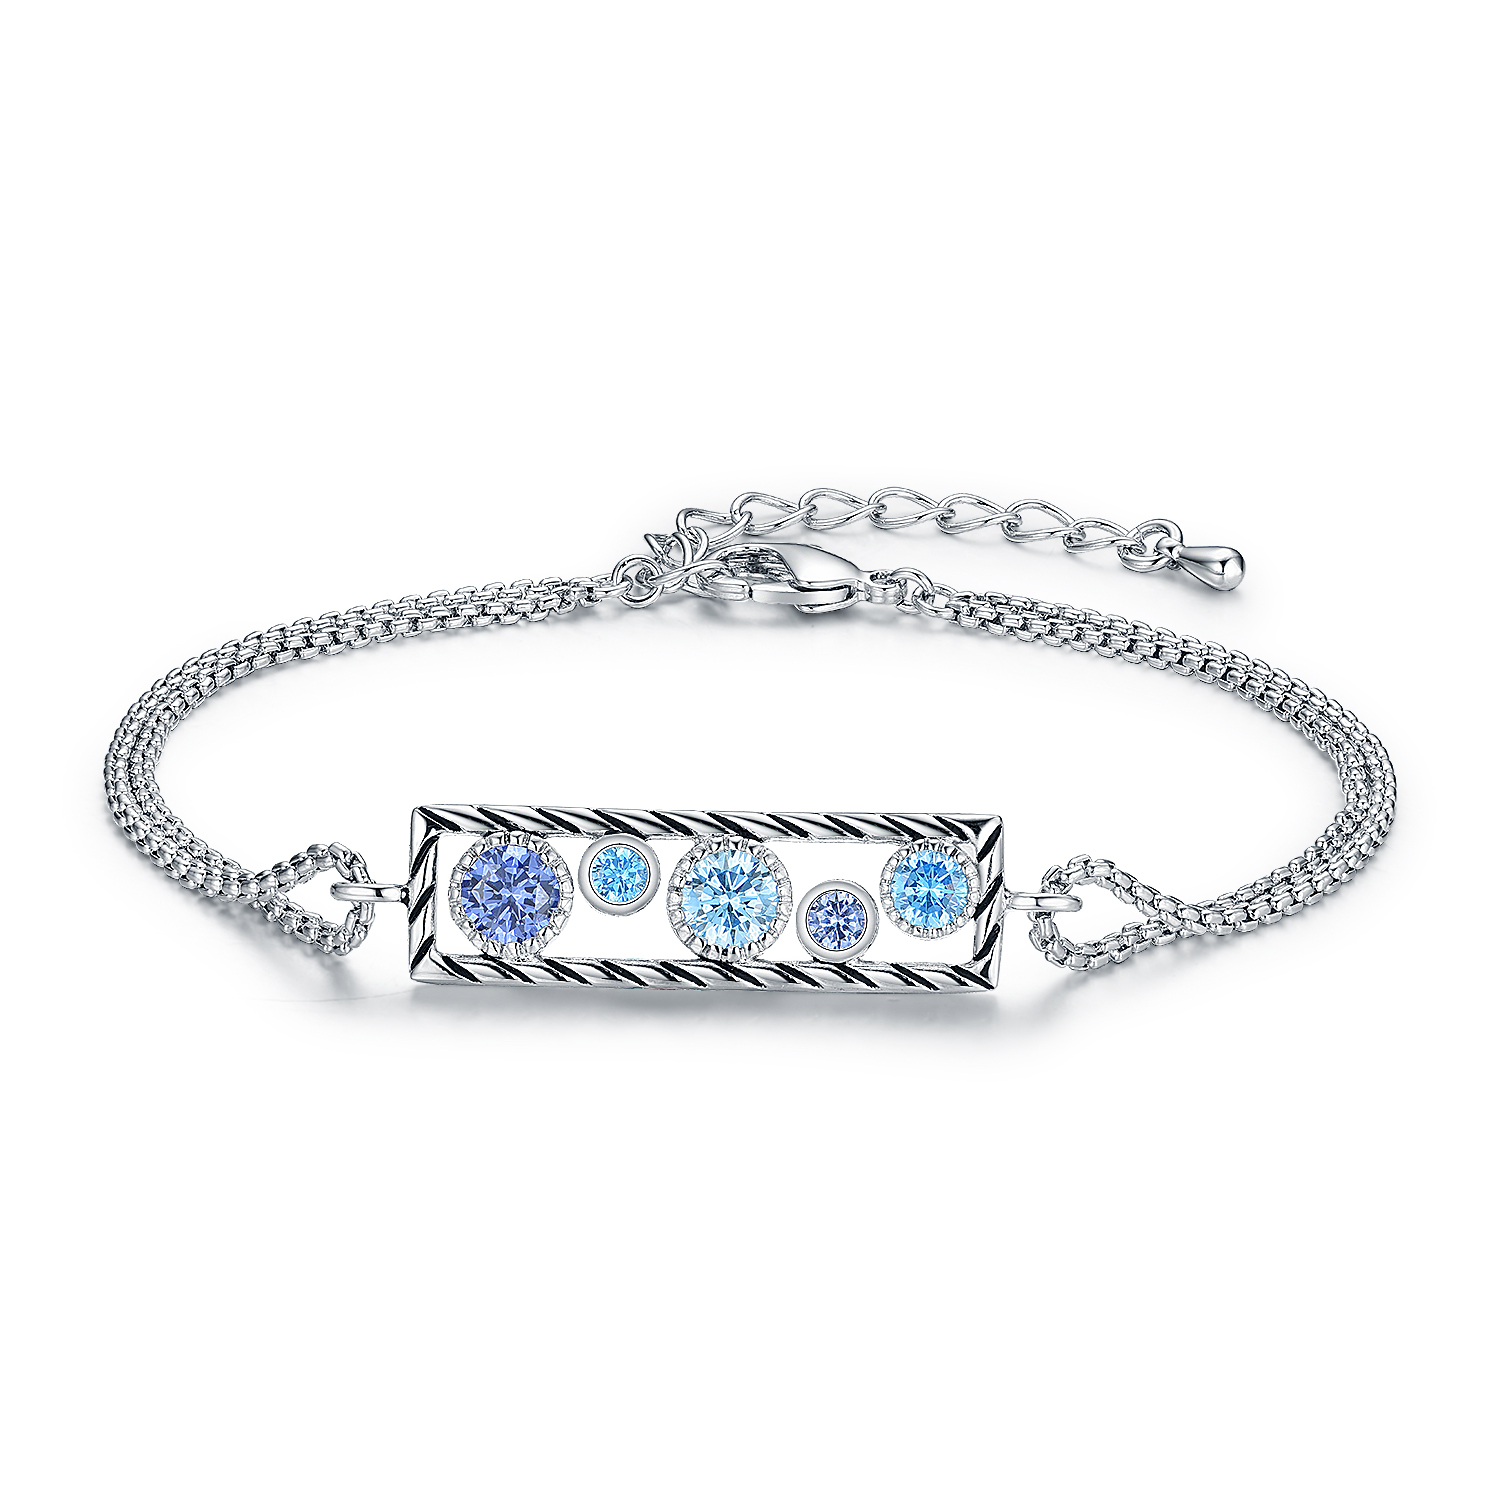 ST2696BR-Designer inspired Cable texture rectangle Bracelet, with bezel setting Round Tanzanite Cubic Zircon & Aquamarine Spinel in Brass/Copper under Rhodium plated from China Top Jewelry factory